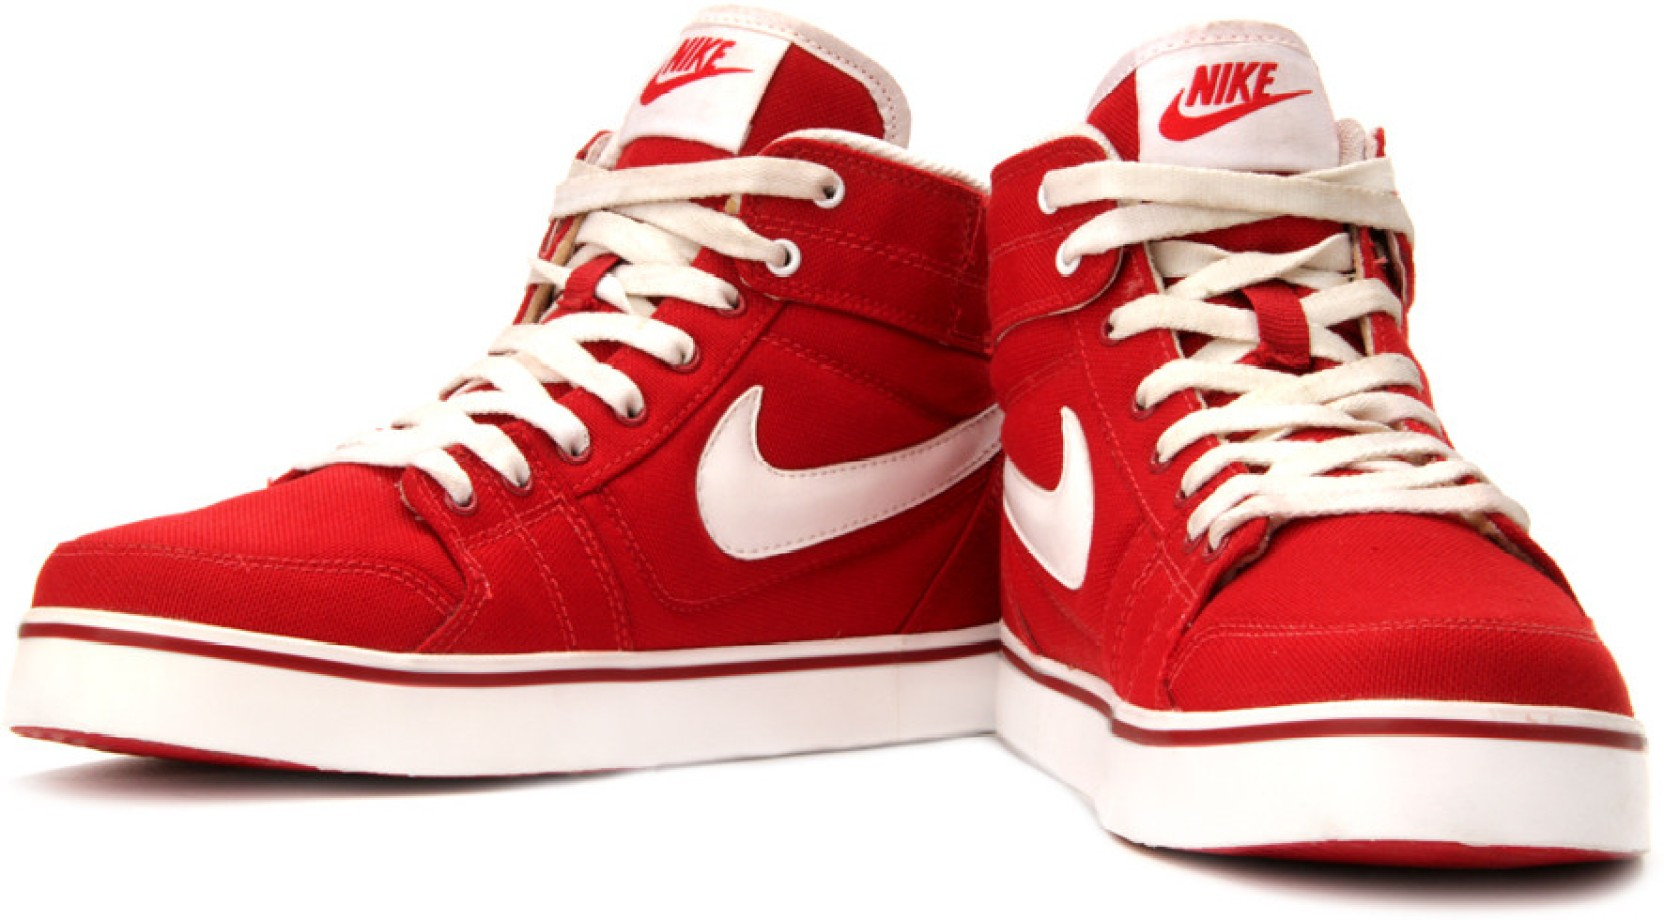 Nike Liteforce Mid Mid Ankle Sneakers For Men - Buy Red Color Nike ... c4f25476d